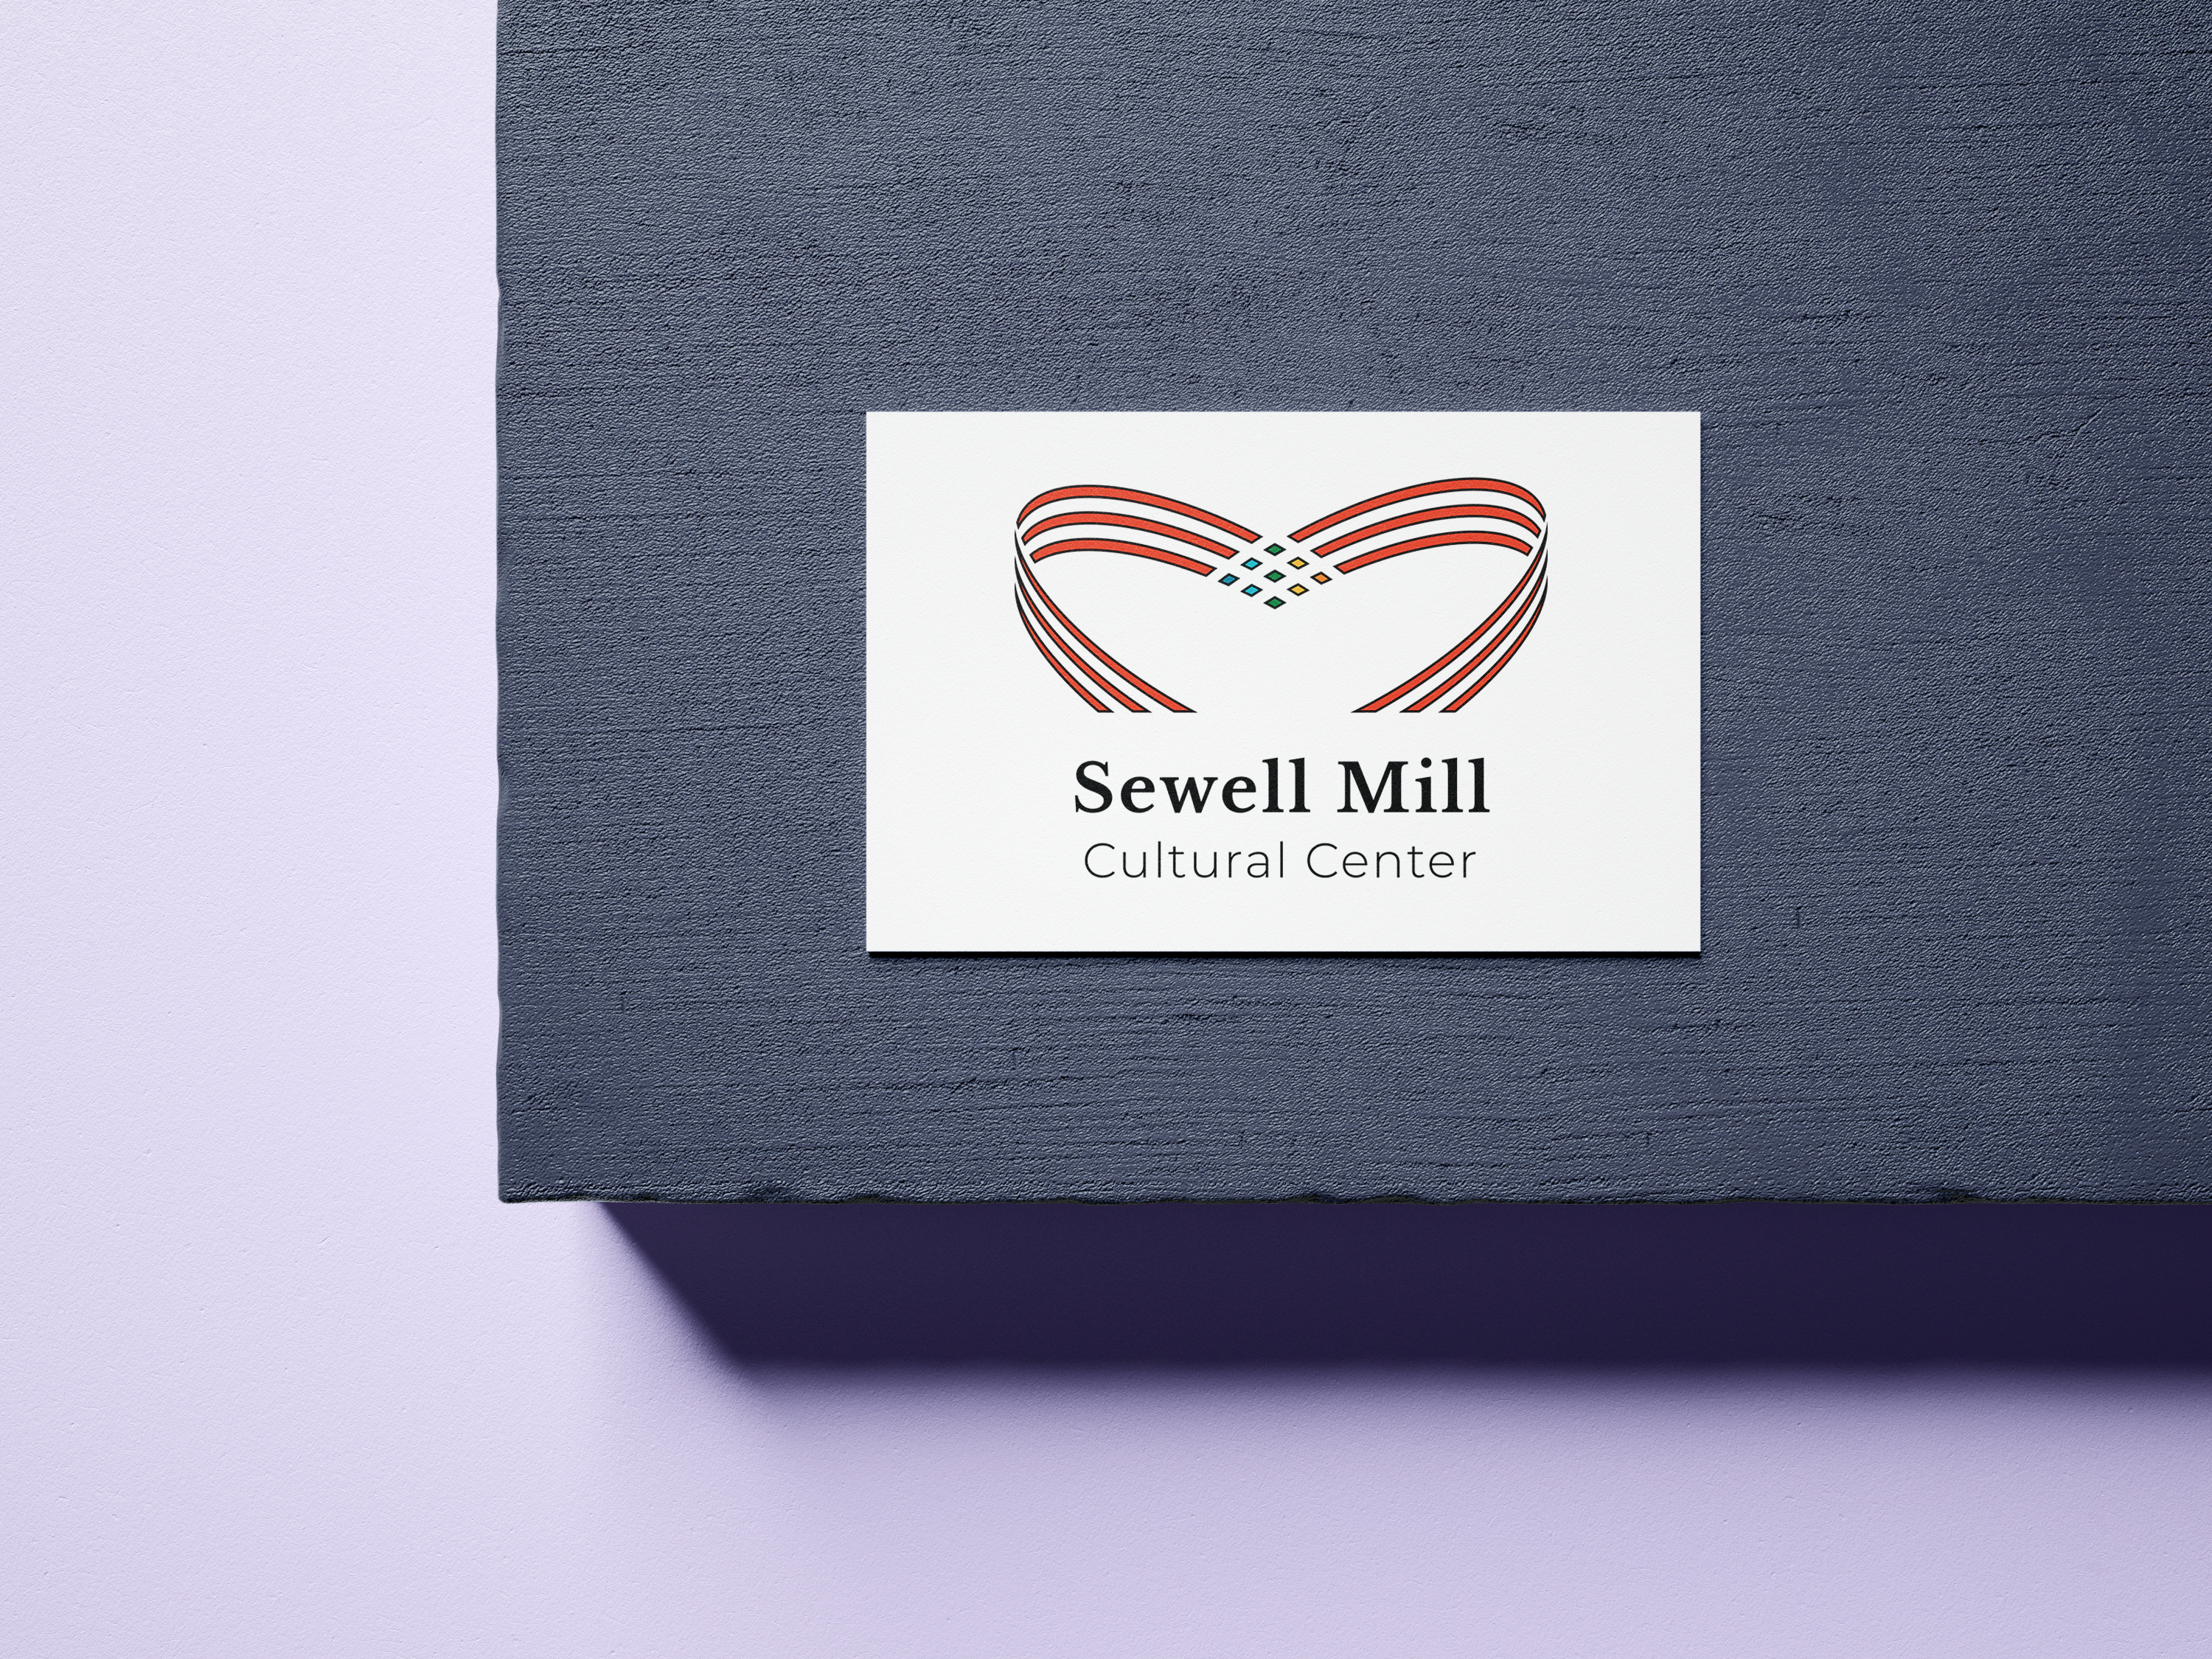 Sewell Mill Cultural Center